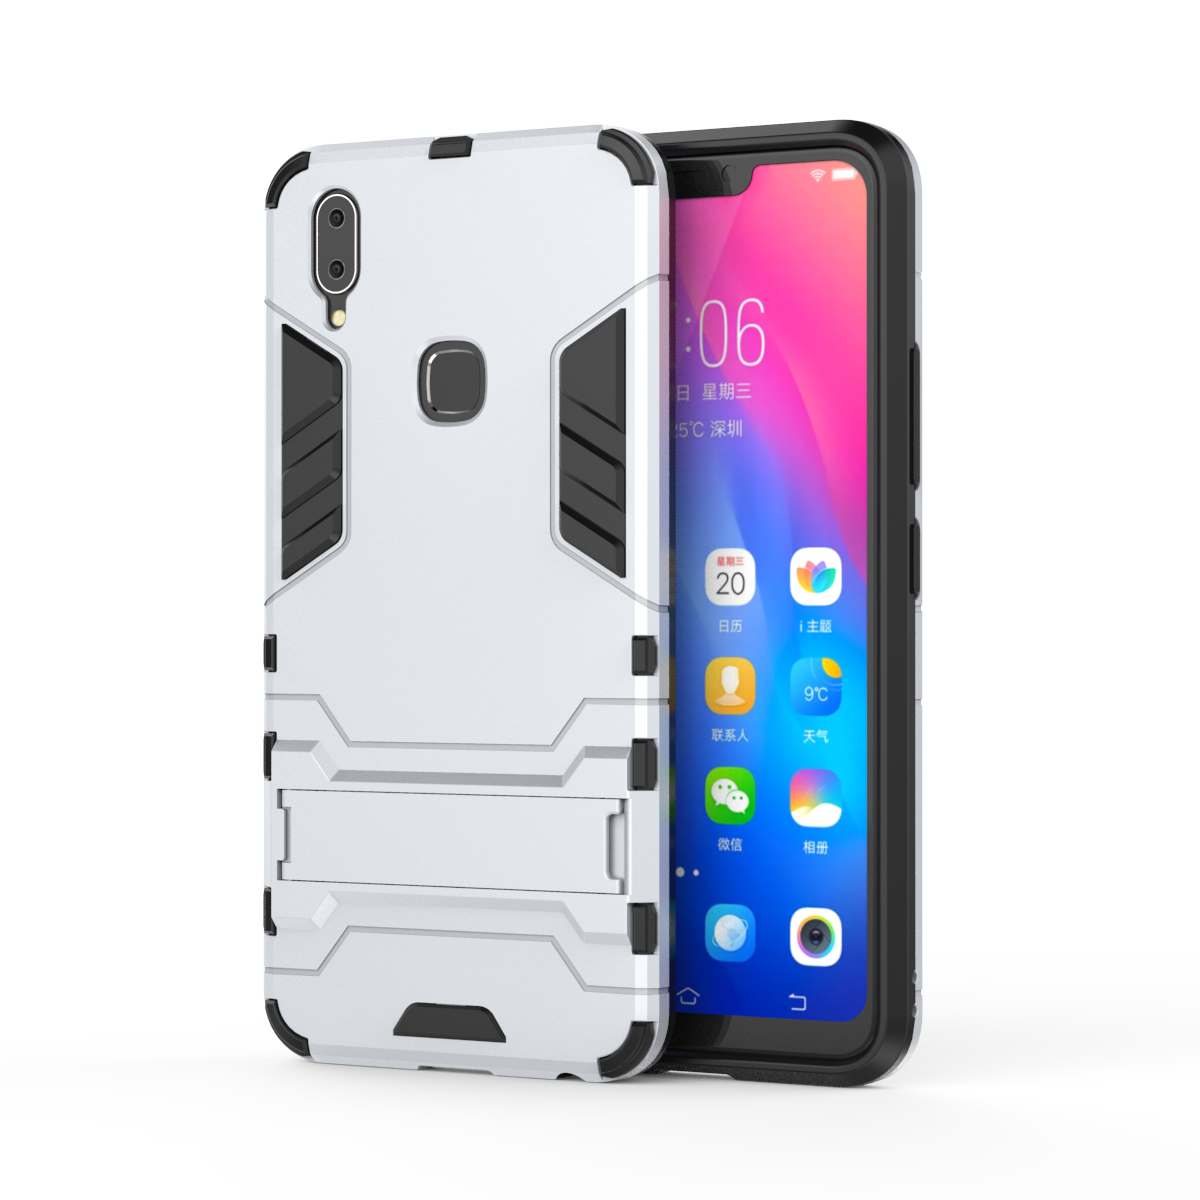 3D Shockproof Armor <font><b>Cases</b></font> For <font><b>ViVo</b></font> Y51 Y53 Y55 Y55L Y55S Y65 Y66 Y67 Y69 <font><b>Y71</b></font> Y73 Y75 Y75S Y79 Y83 Pro Y85 TPU Stand Phone Cover image